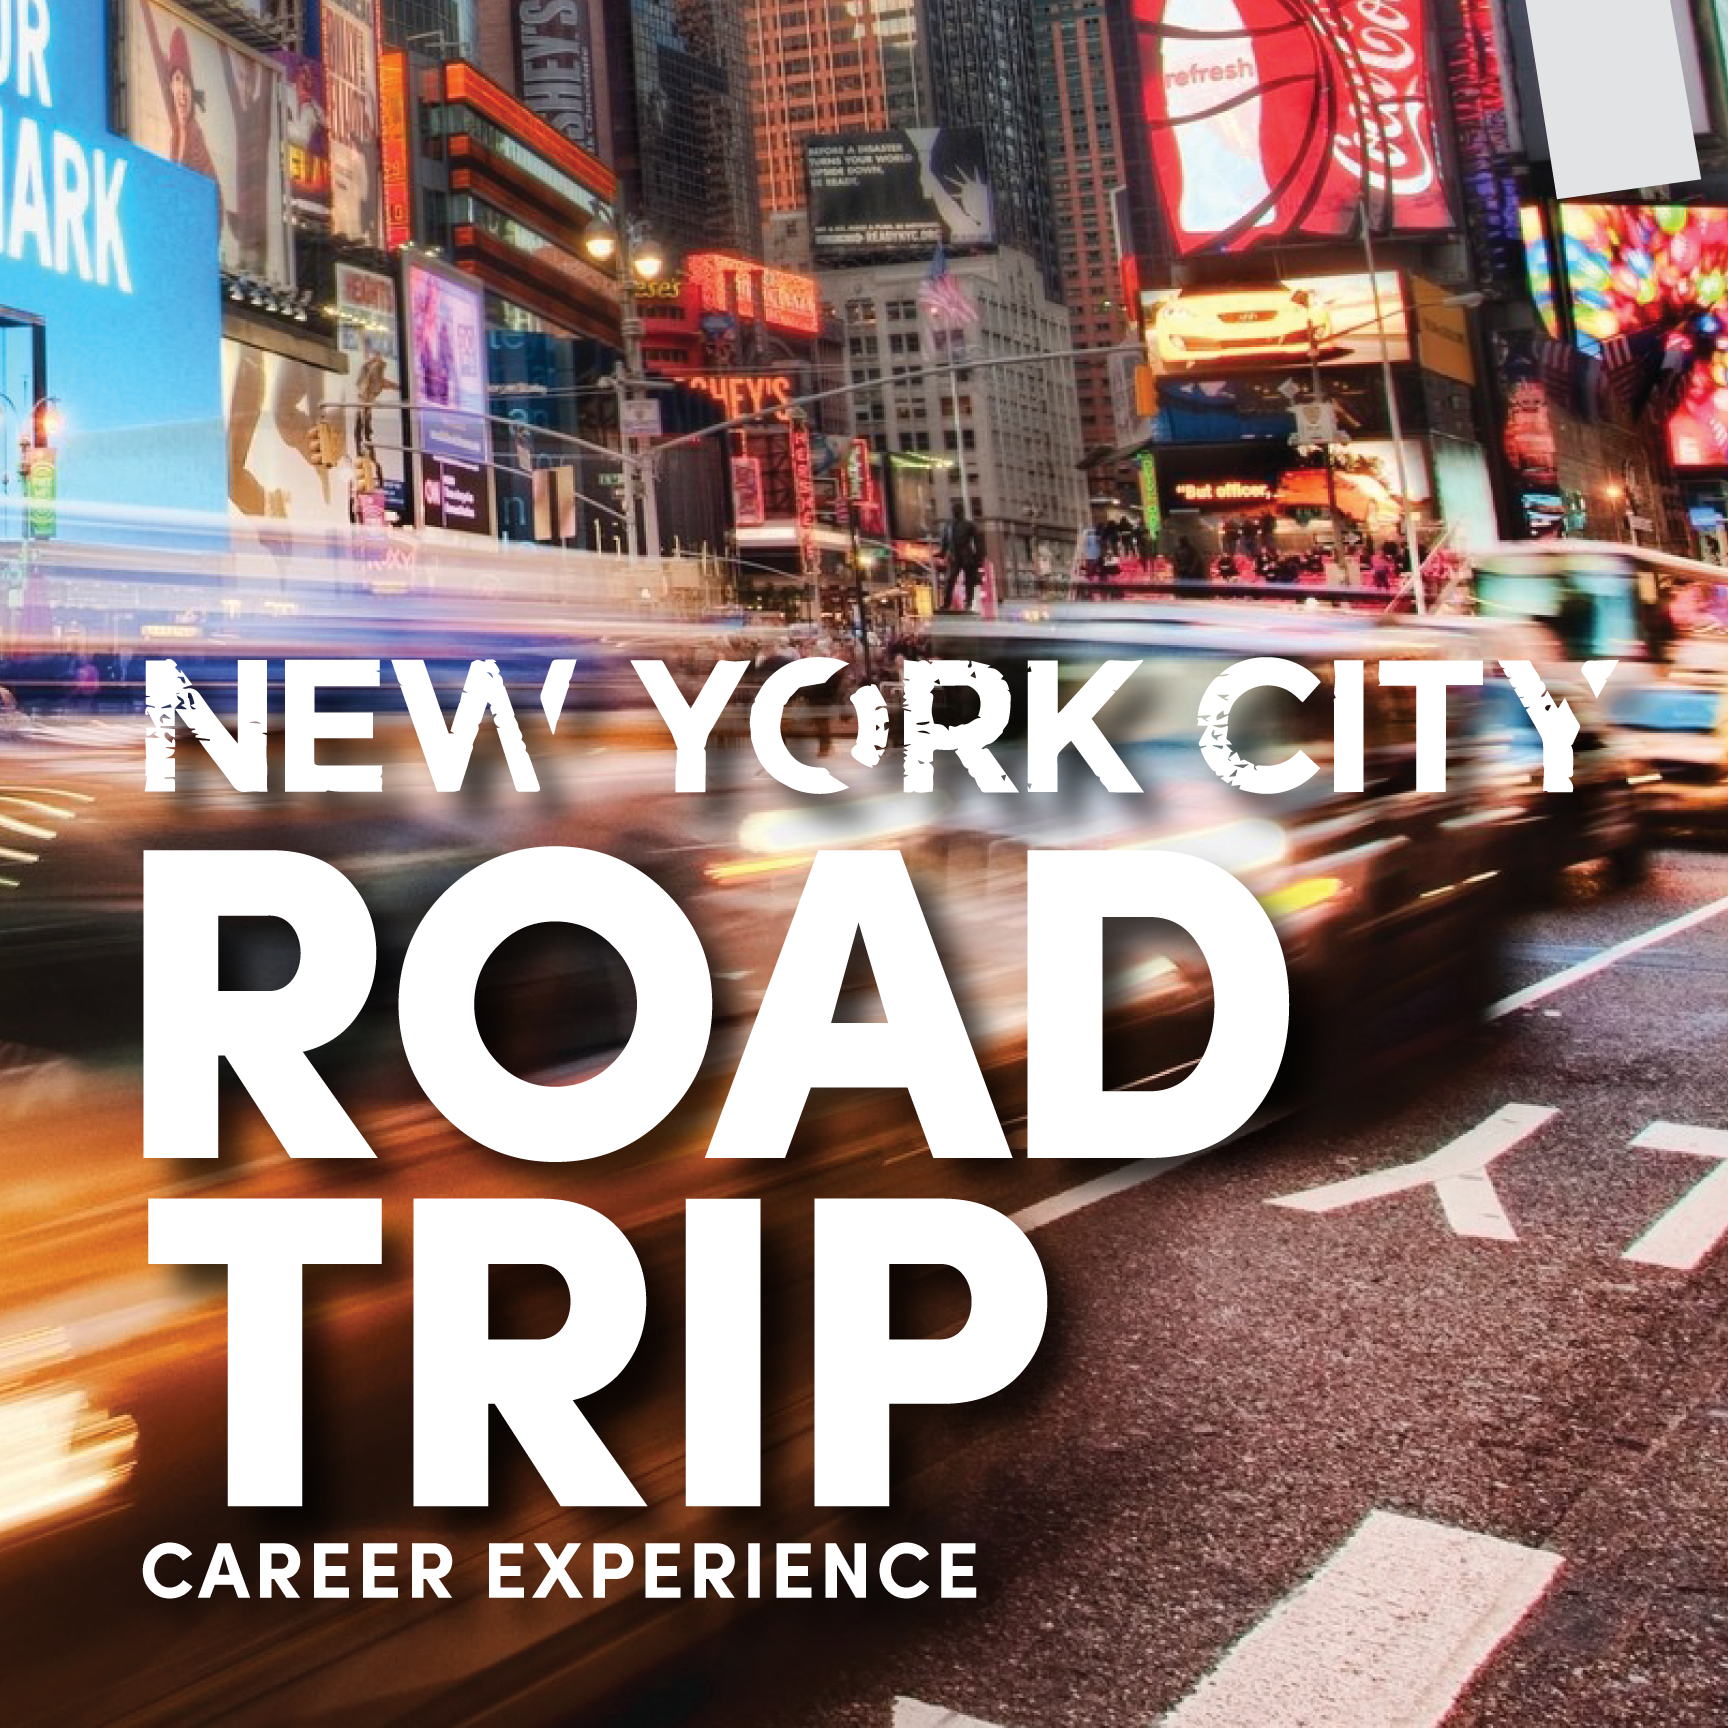 Nyc Events Calendar 2019 UB Events Calendar   2019 NYC Road Trip